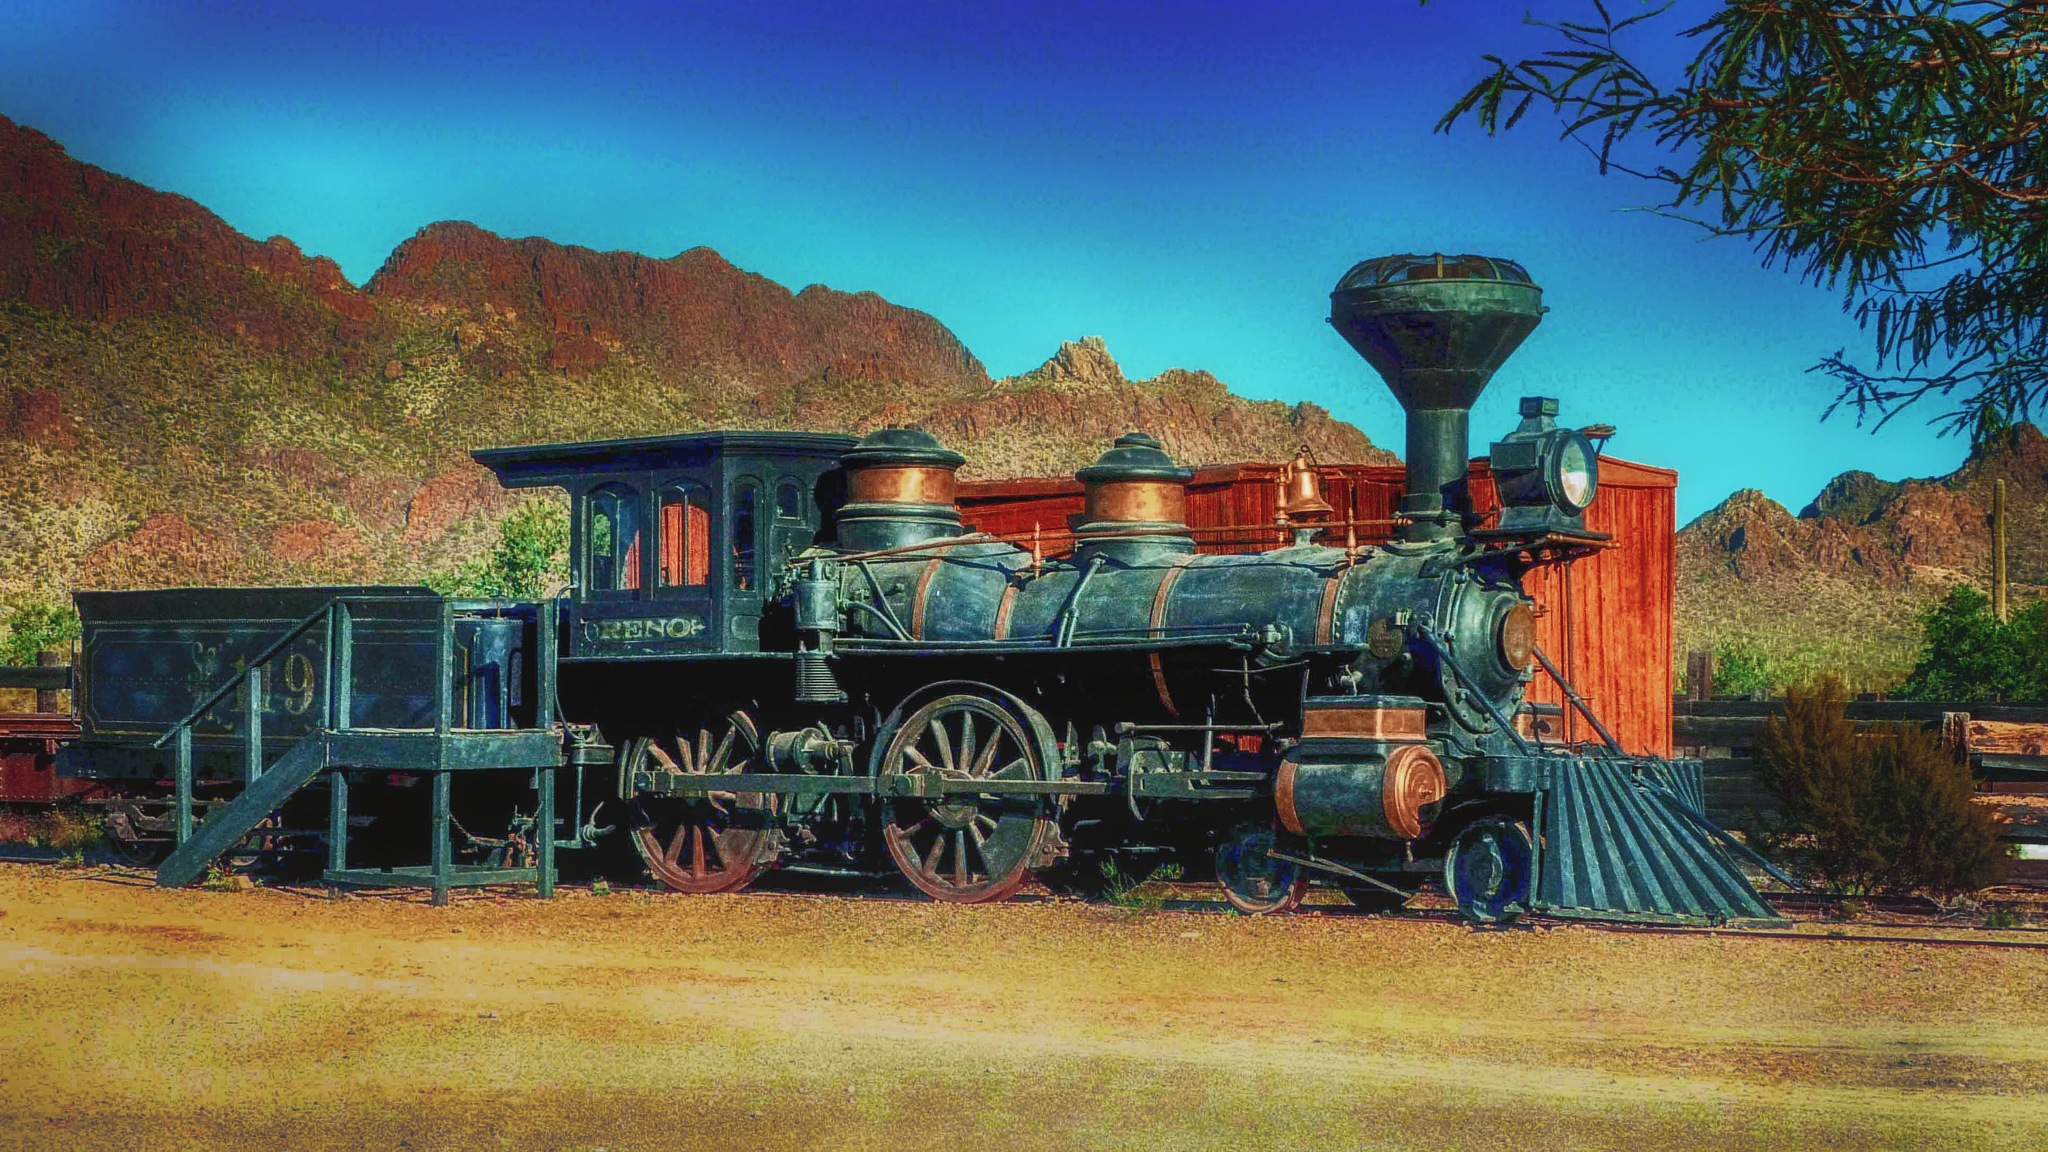 Old Tucson Train Engine by David Walters